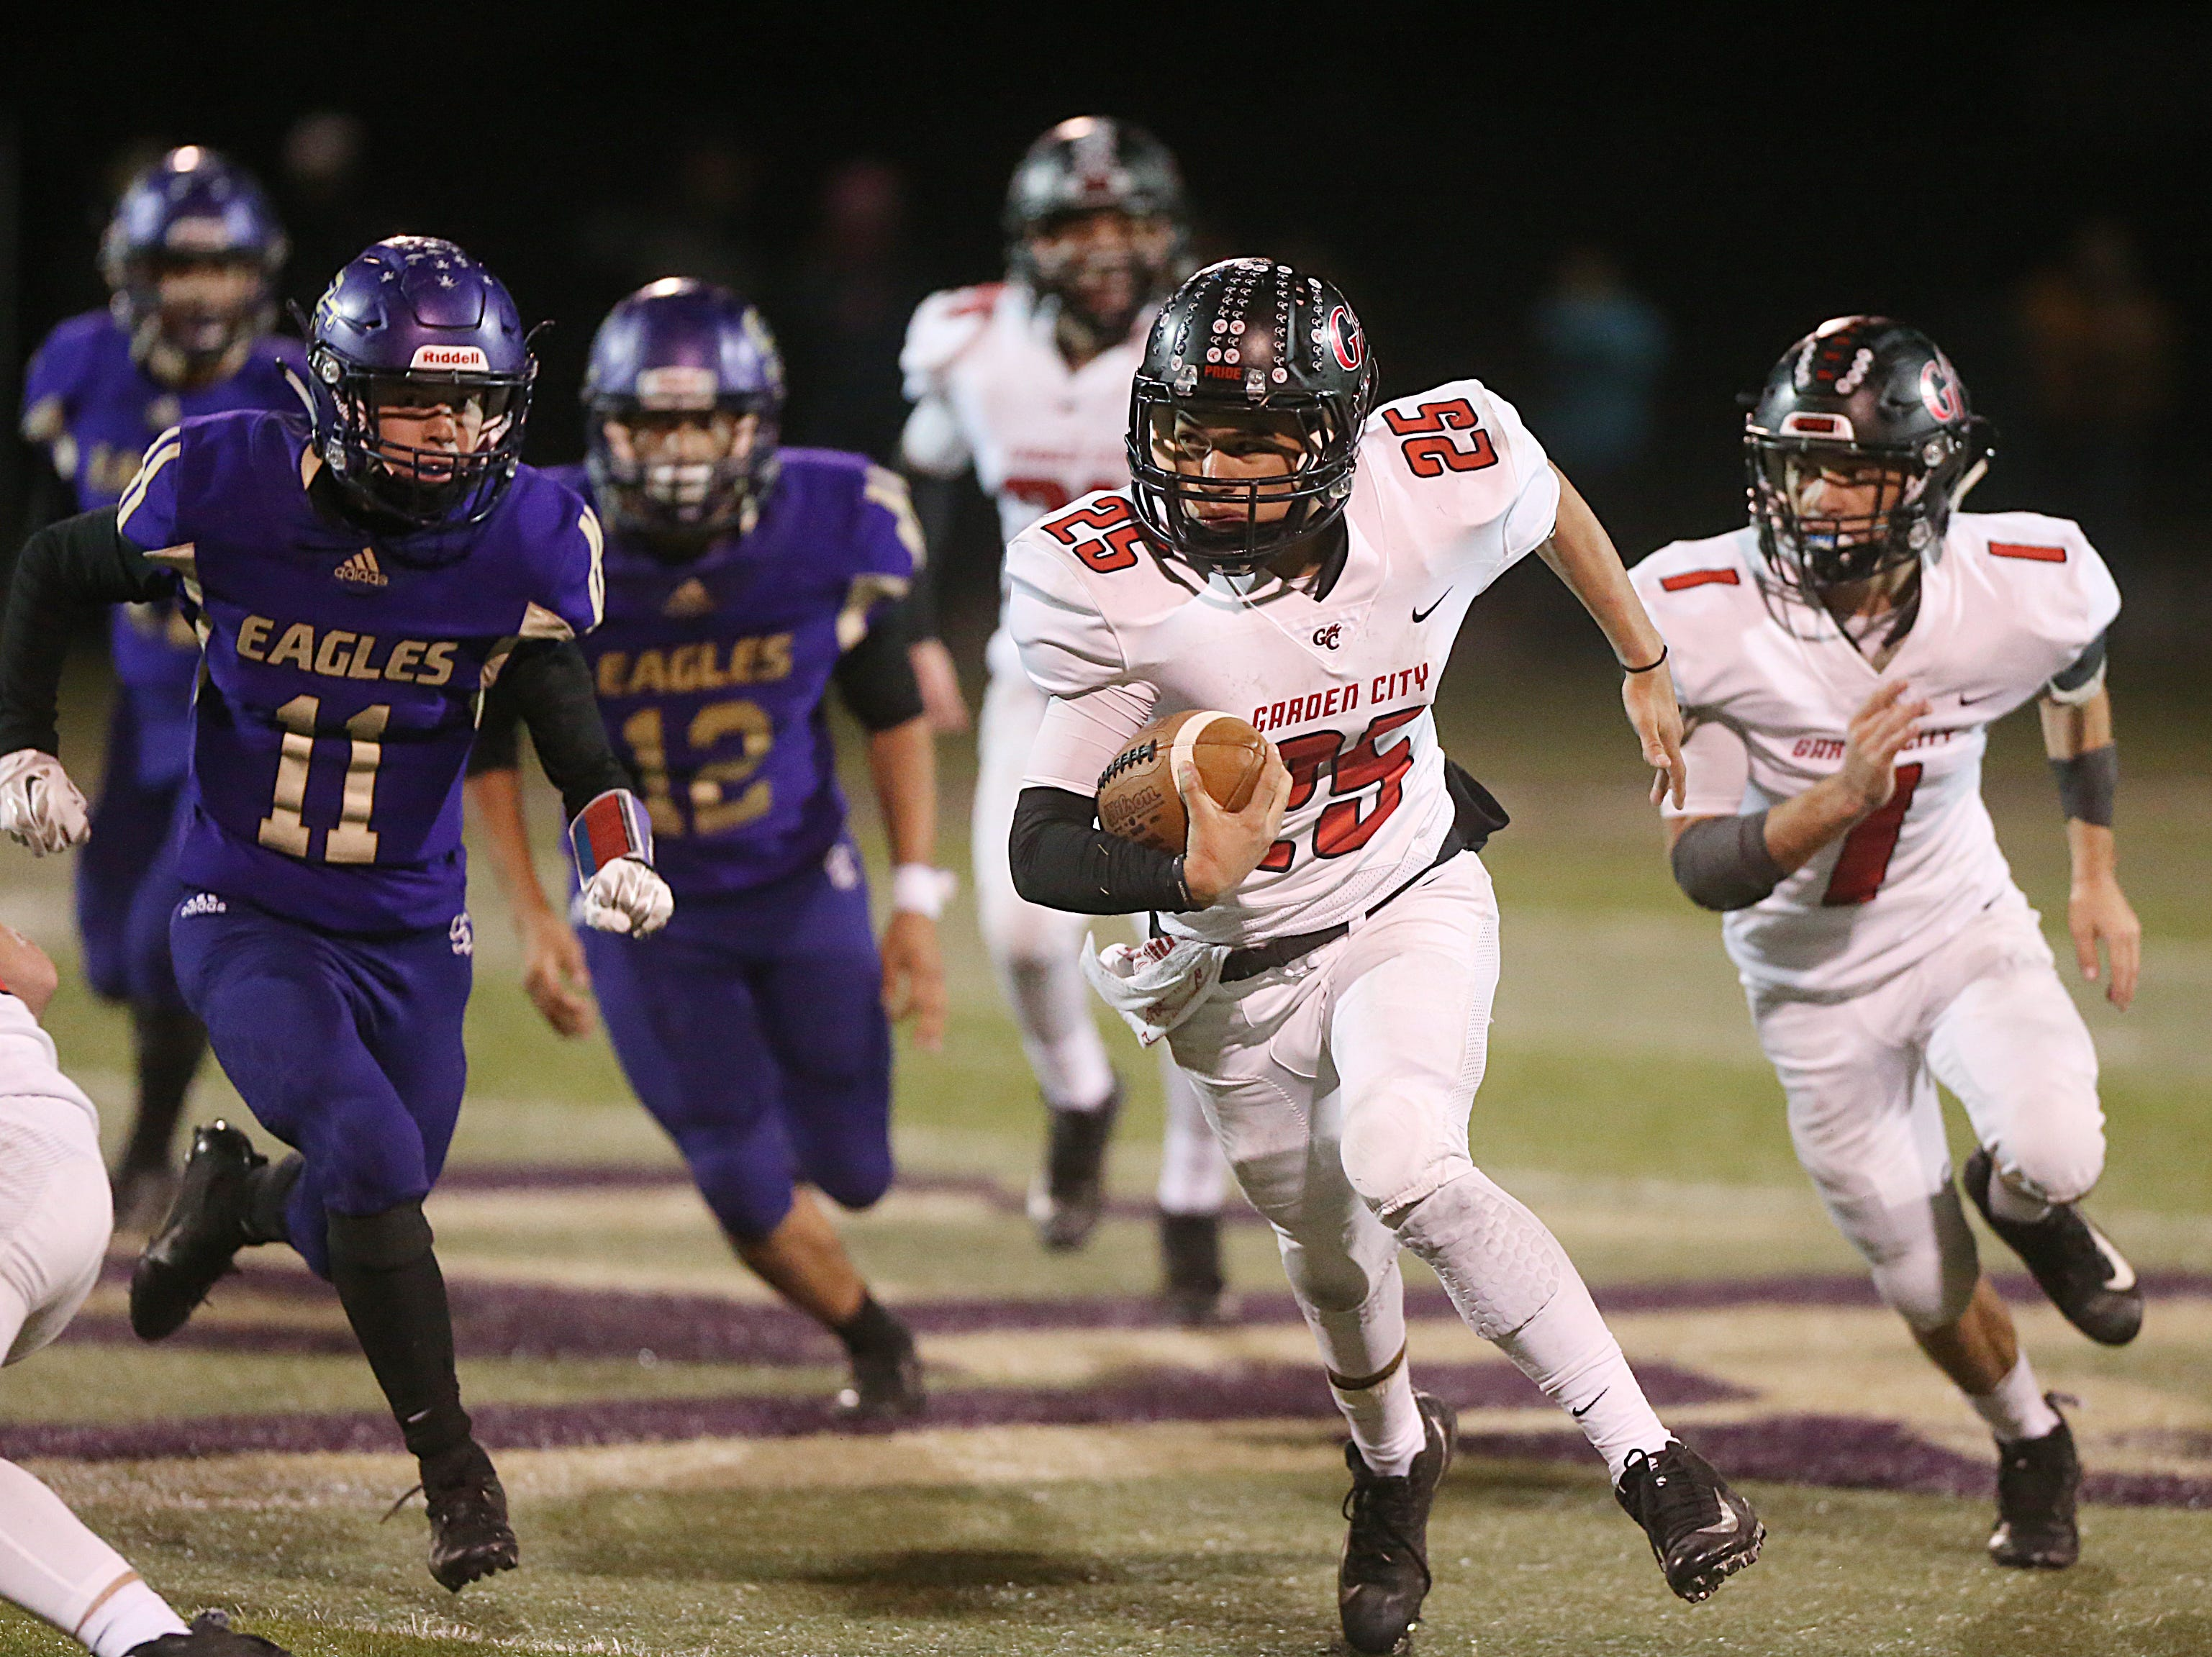 Garden City's Cesar Chavez (#25) rushes past Sterling City's defense Friday, Nov. 9, 2018 during their game in Sterling City.